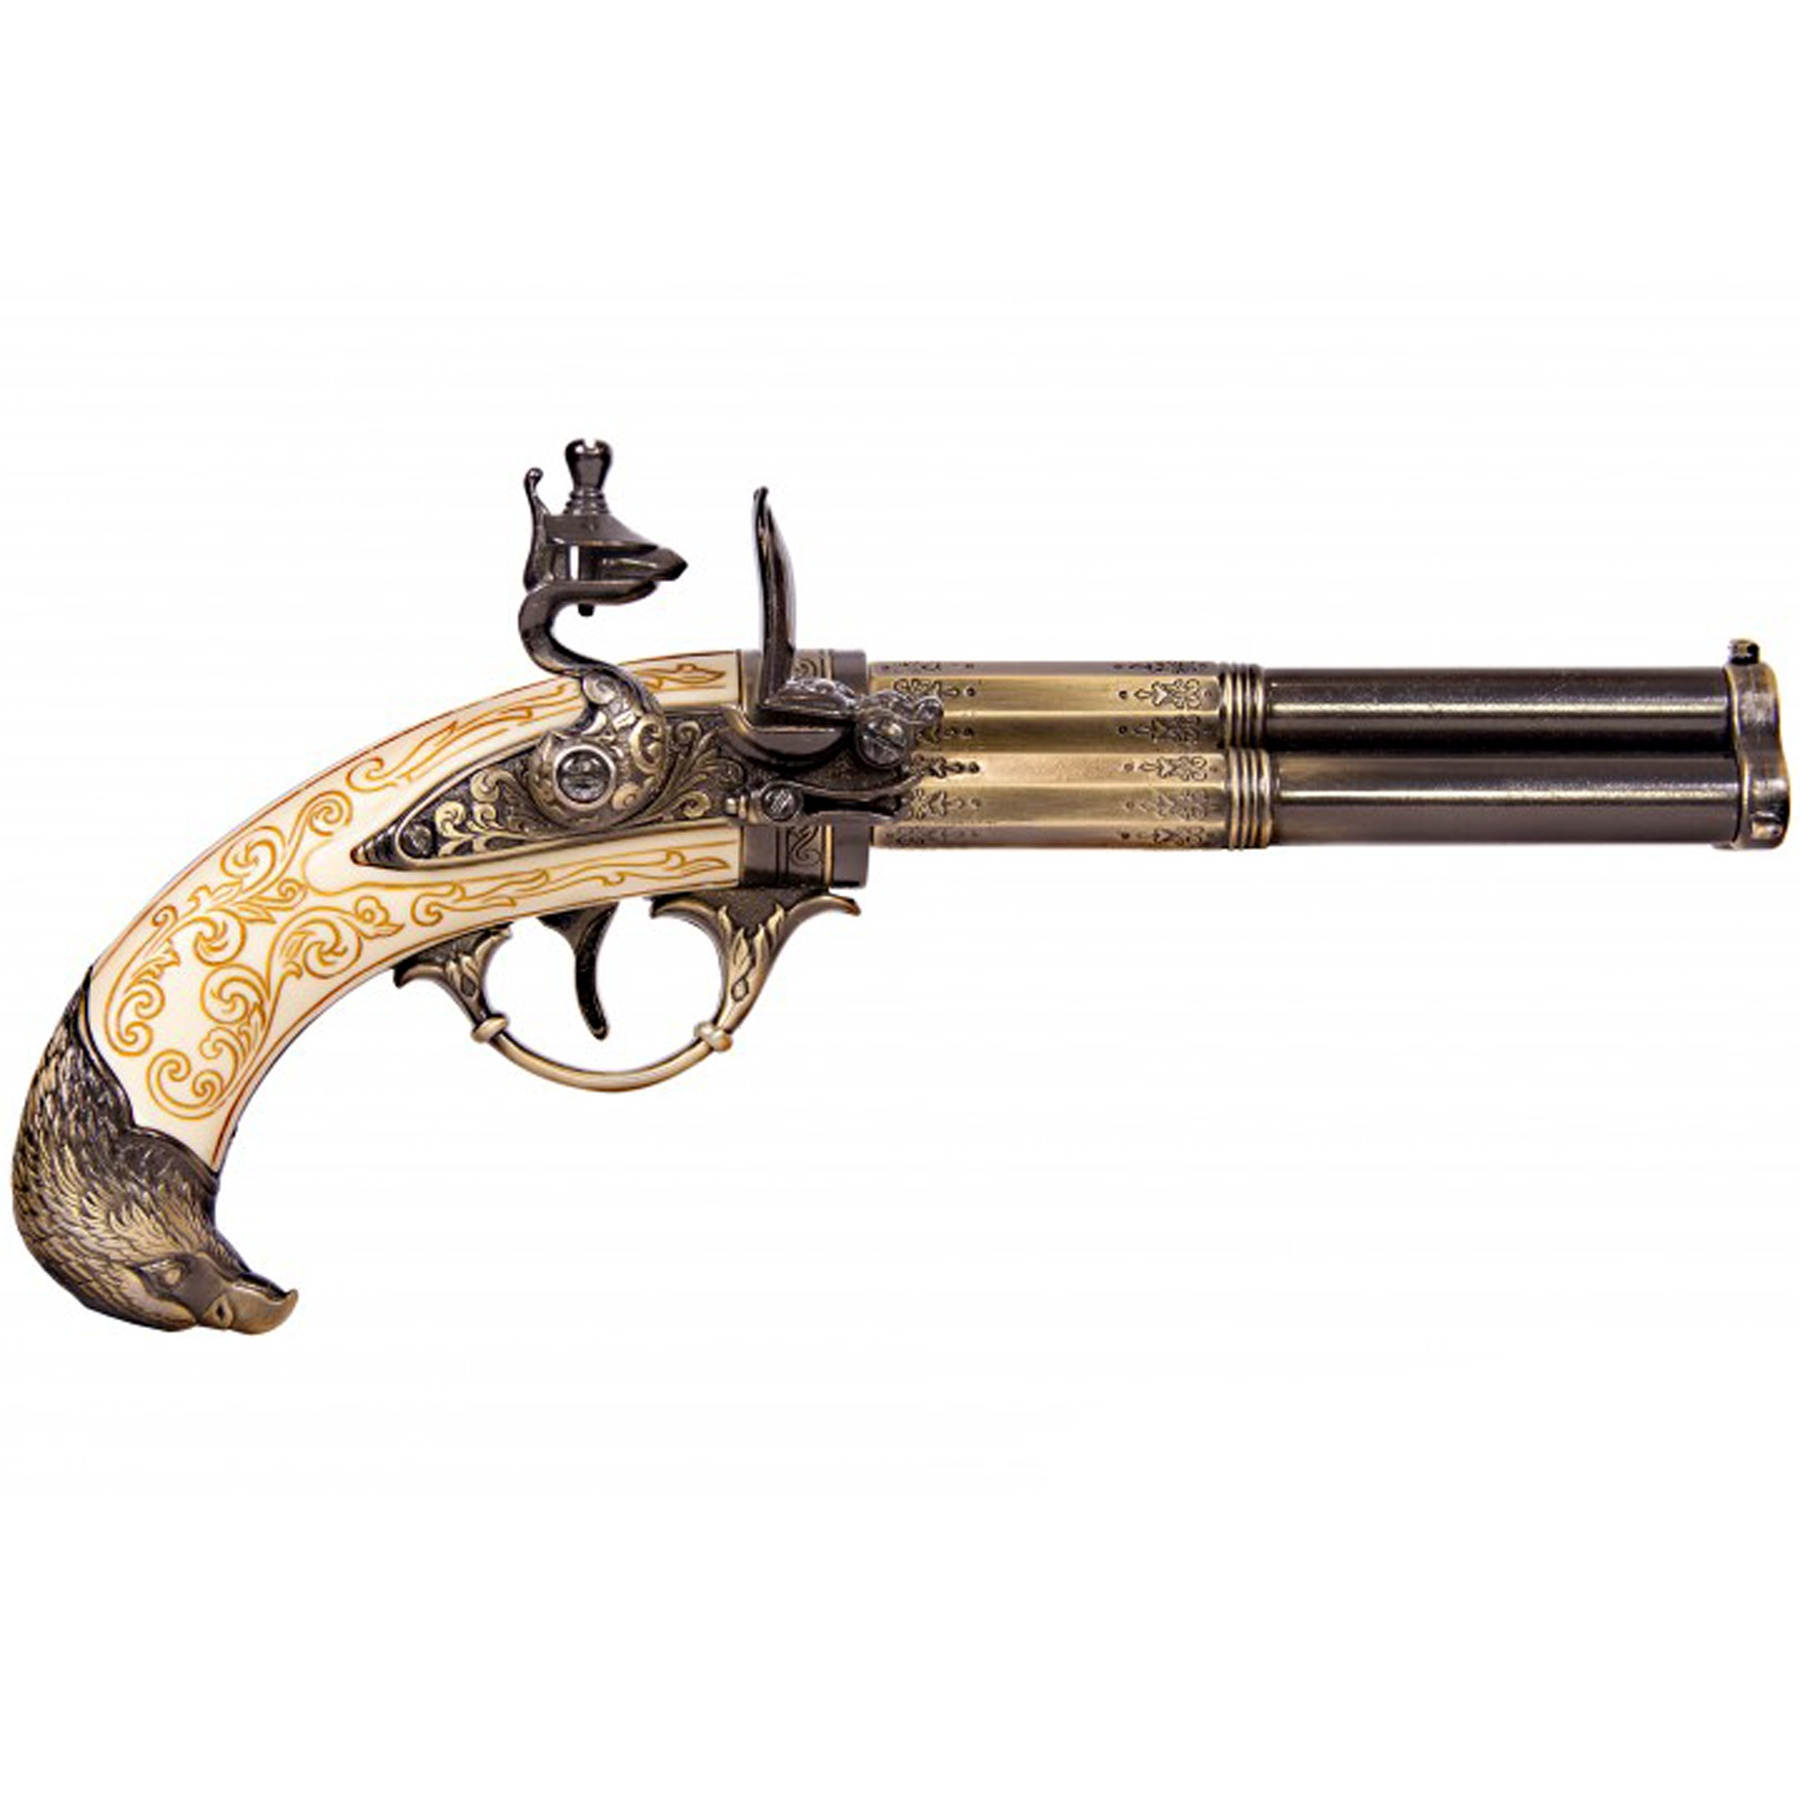 Historical Firearms Wild West To Colonial Europe The Zombie